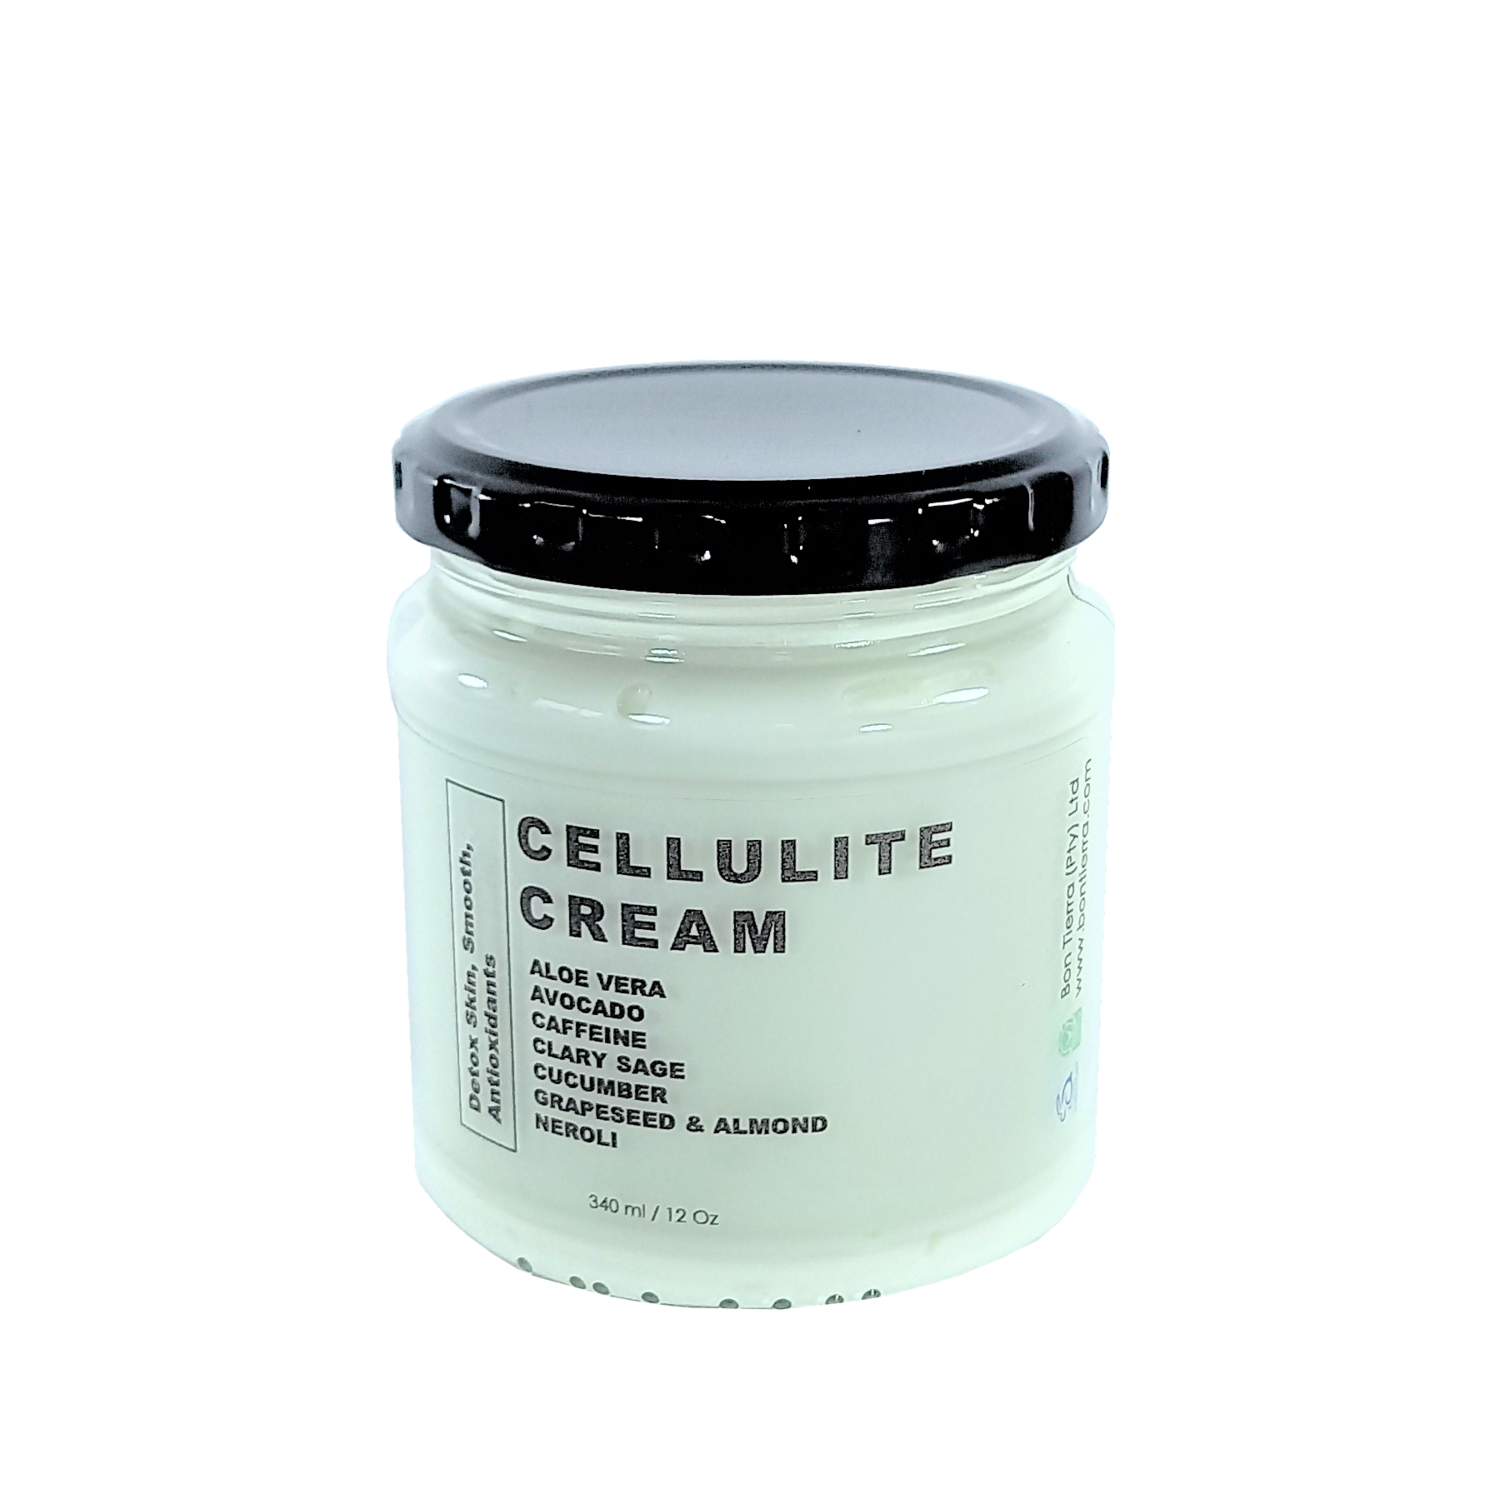 CELLULITE CREAM 340ML